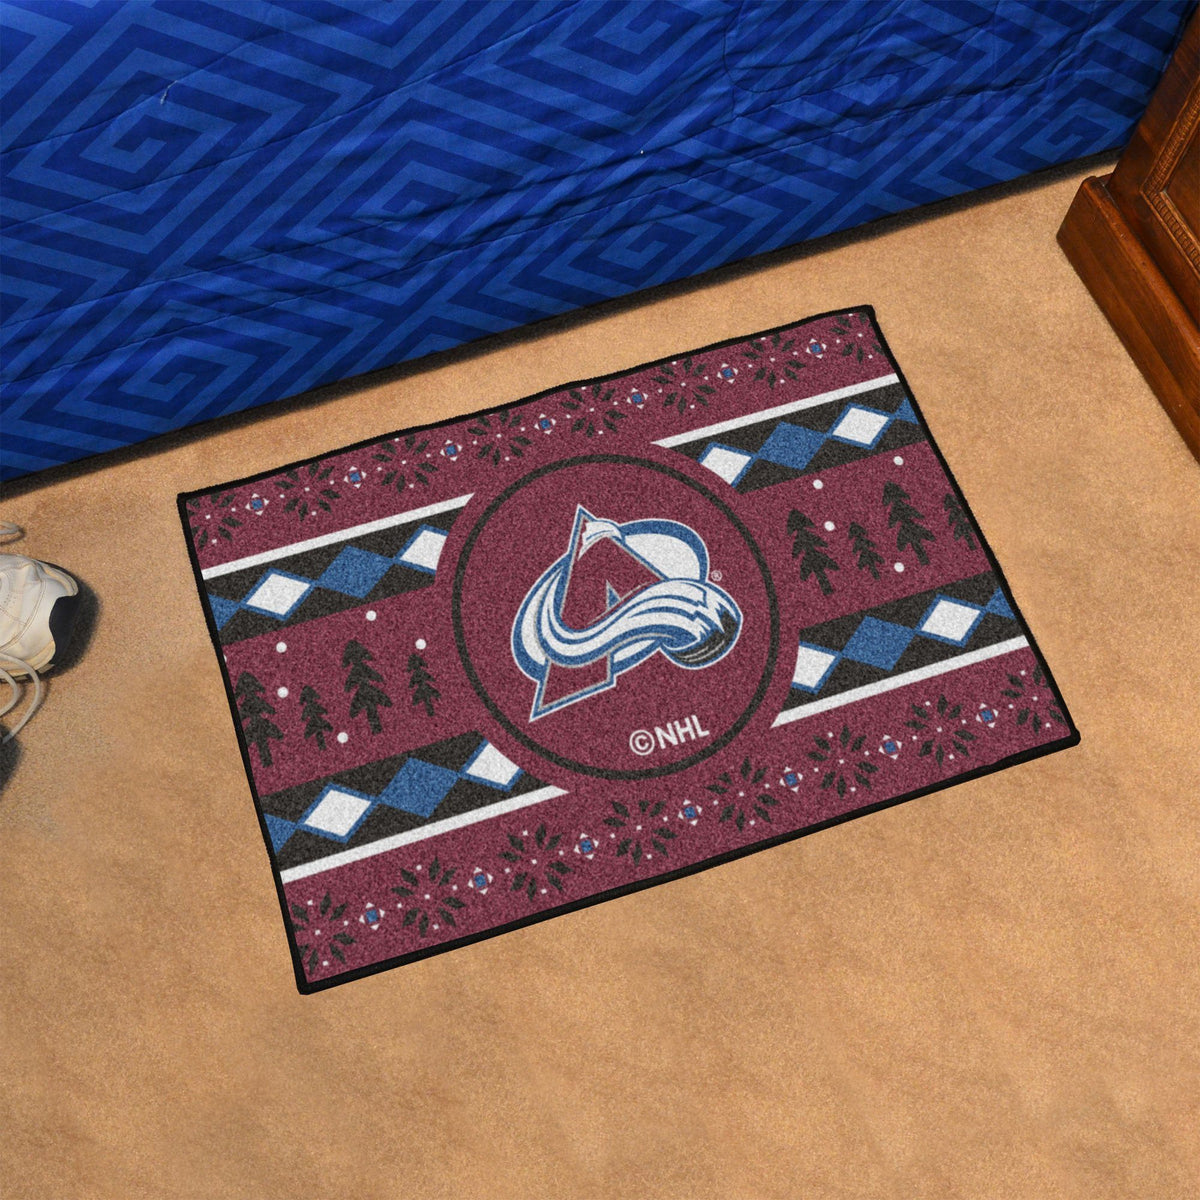 NHL - Holiday Sweater Starter Mat NHL Mats, Rectangular Mats, Holiday Sweater Starter Mat, NHL, Home Fan Mats Colorado Avalanche